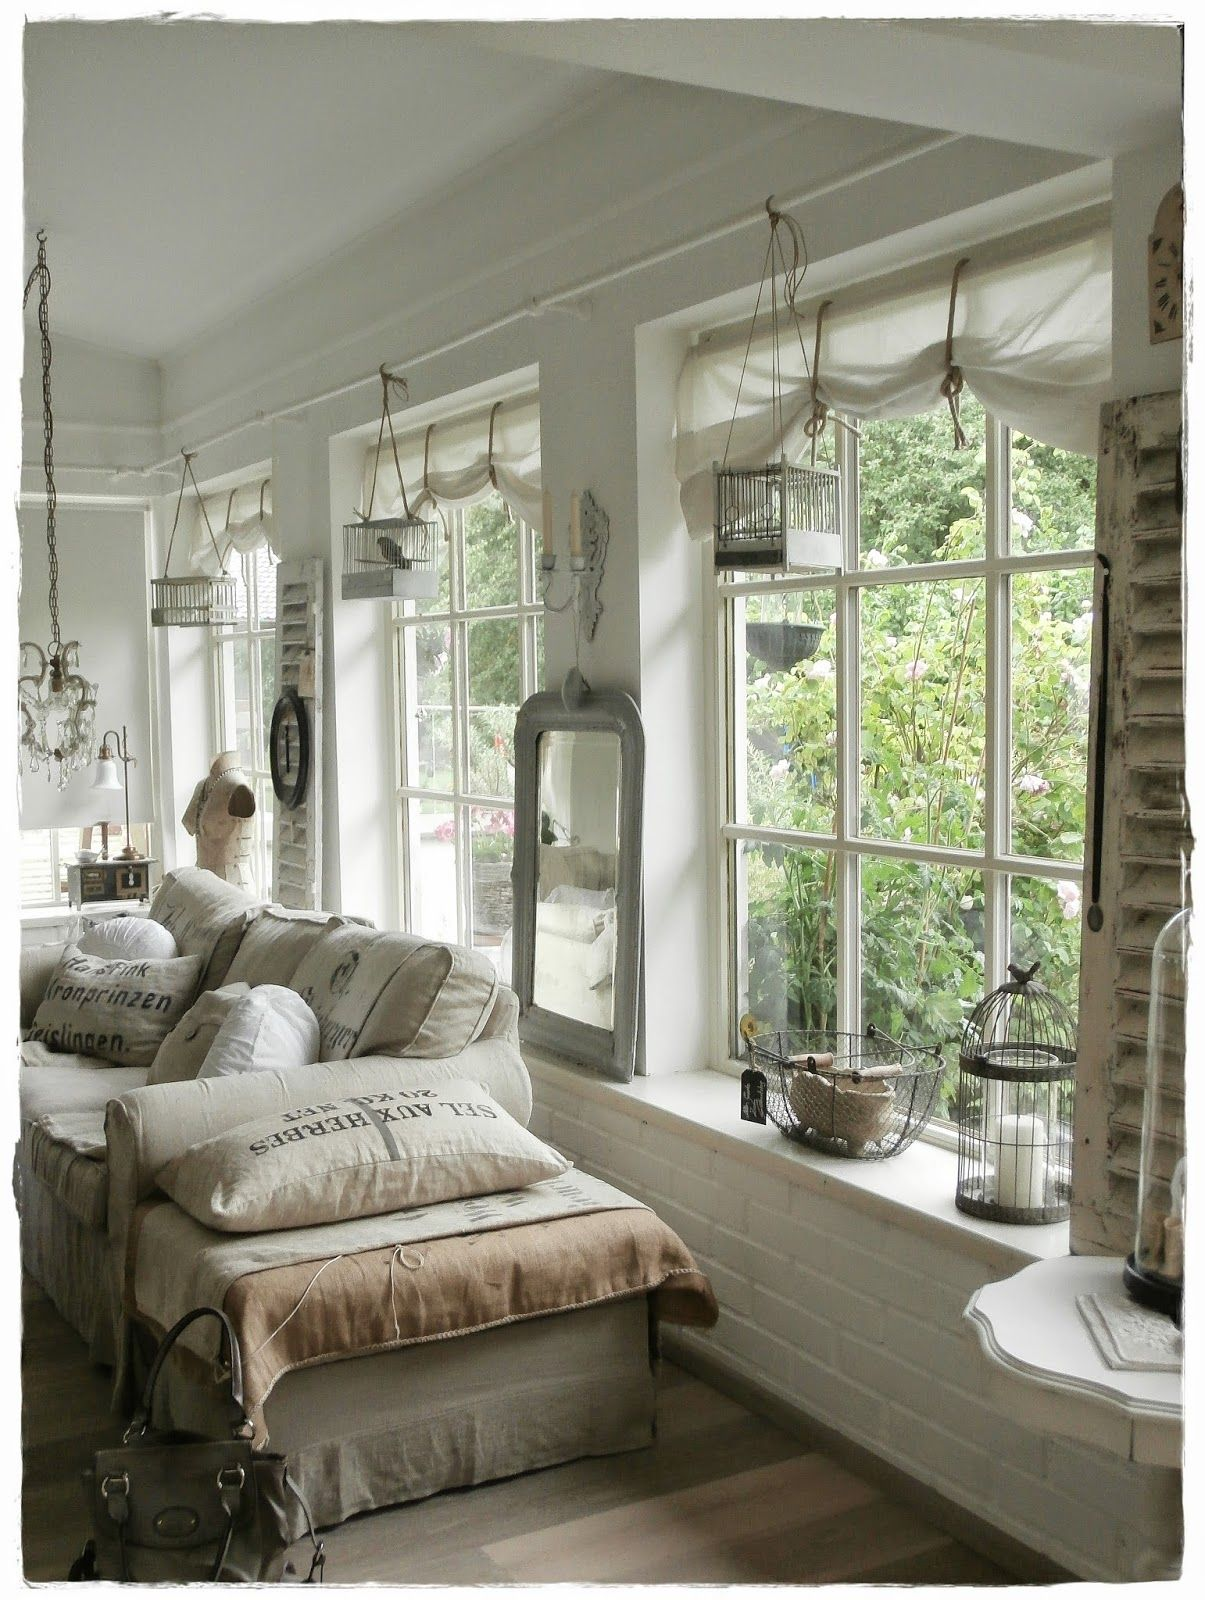 Landhausstil Wohnzimmer Shabby Landhaus Windows Balconies In 2019